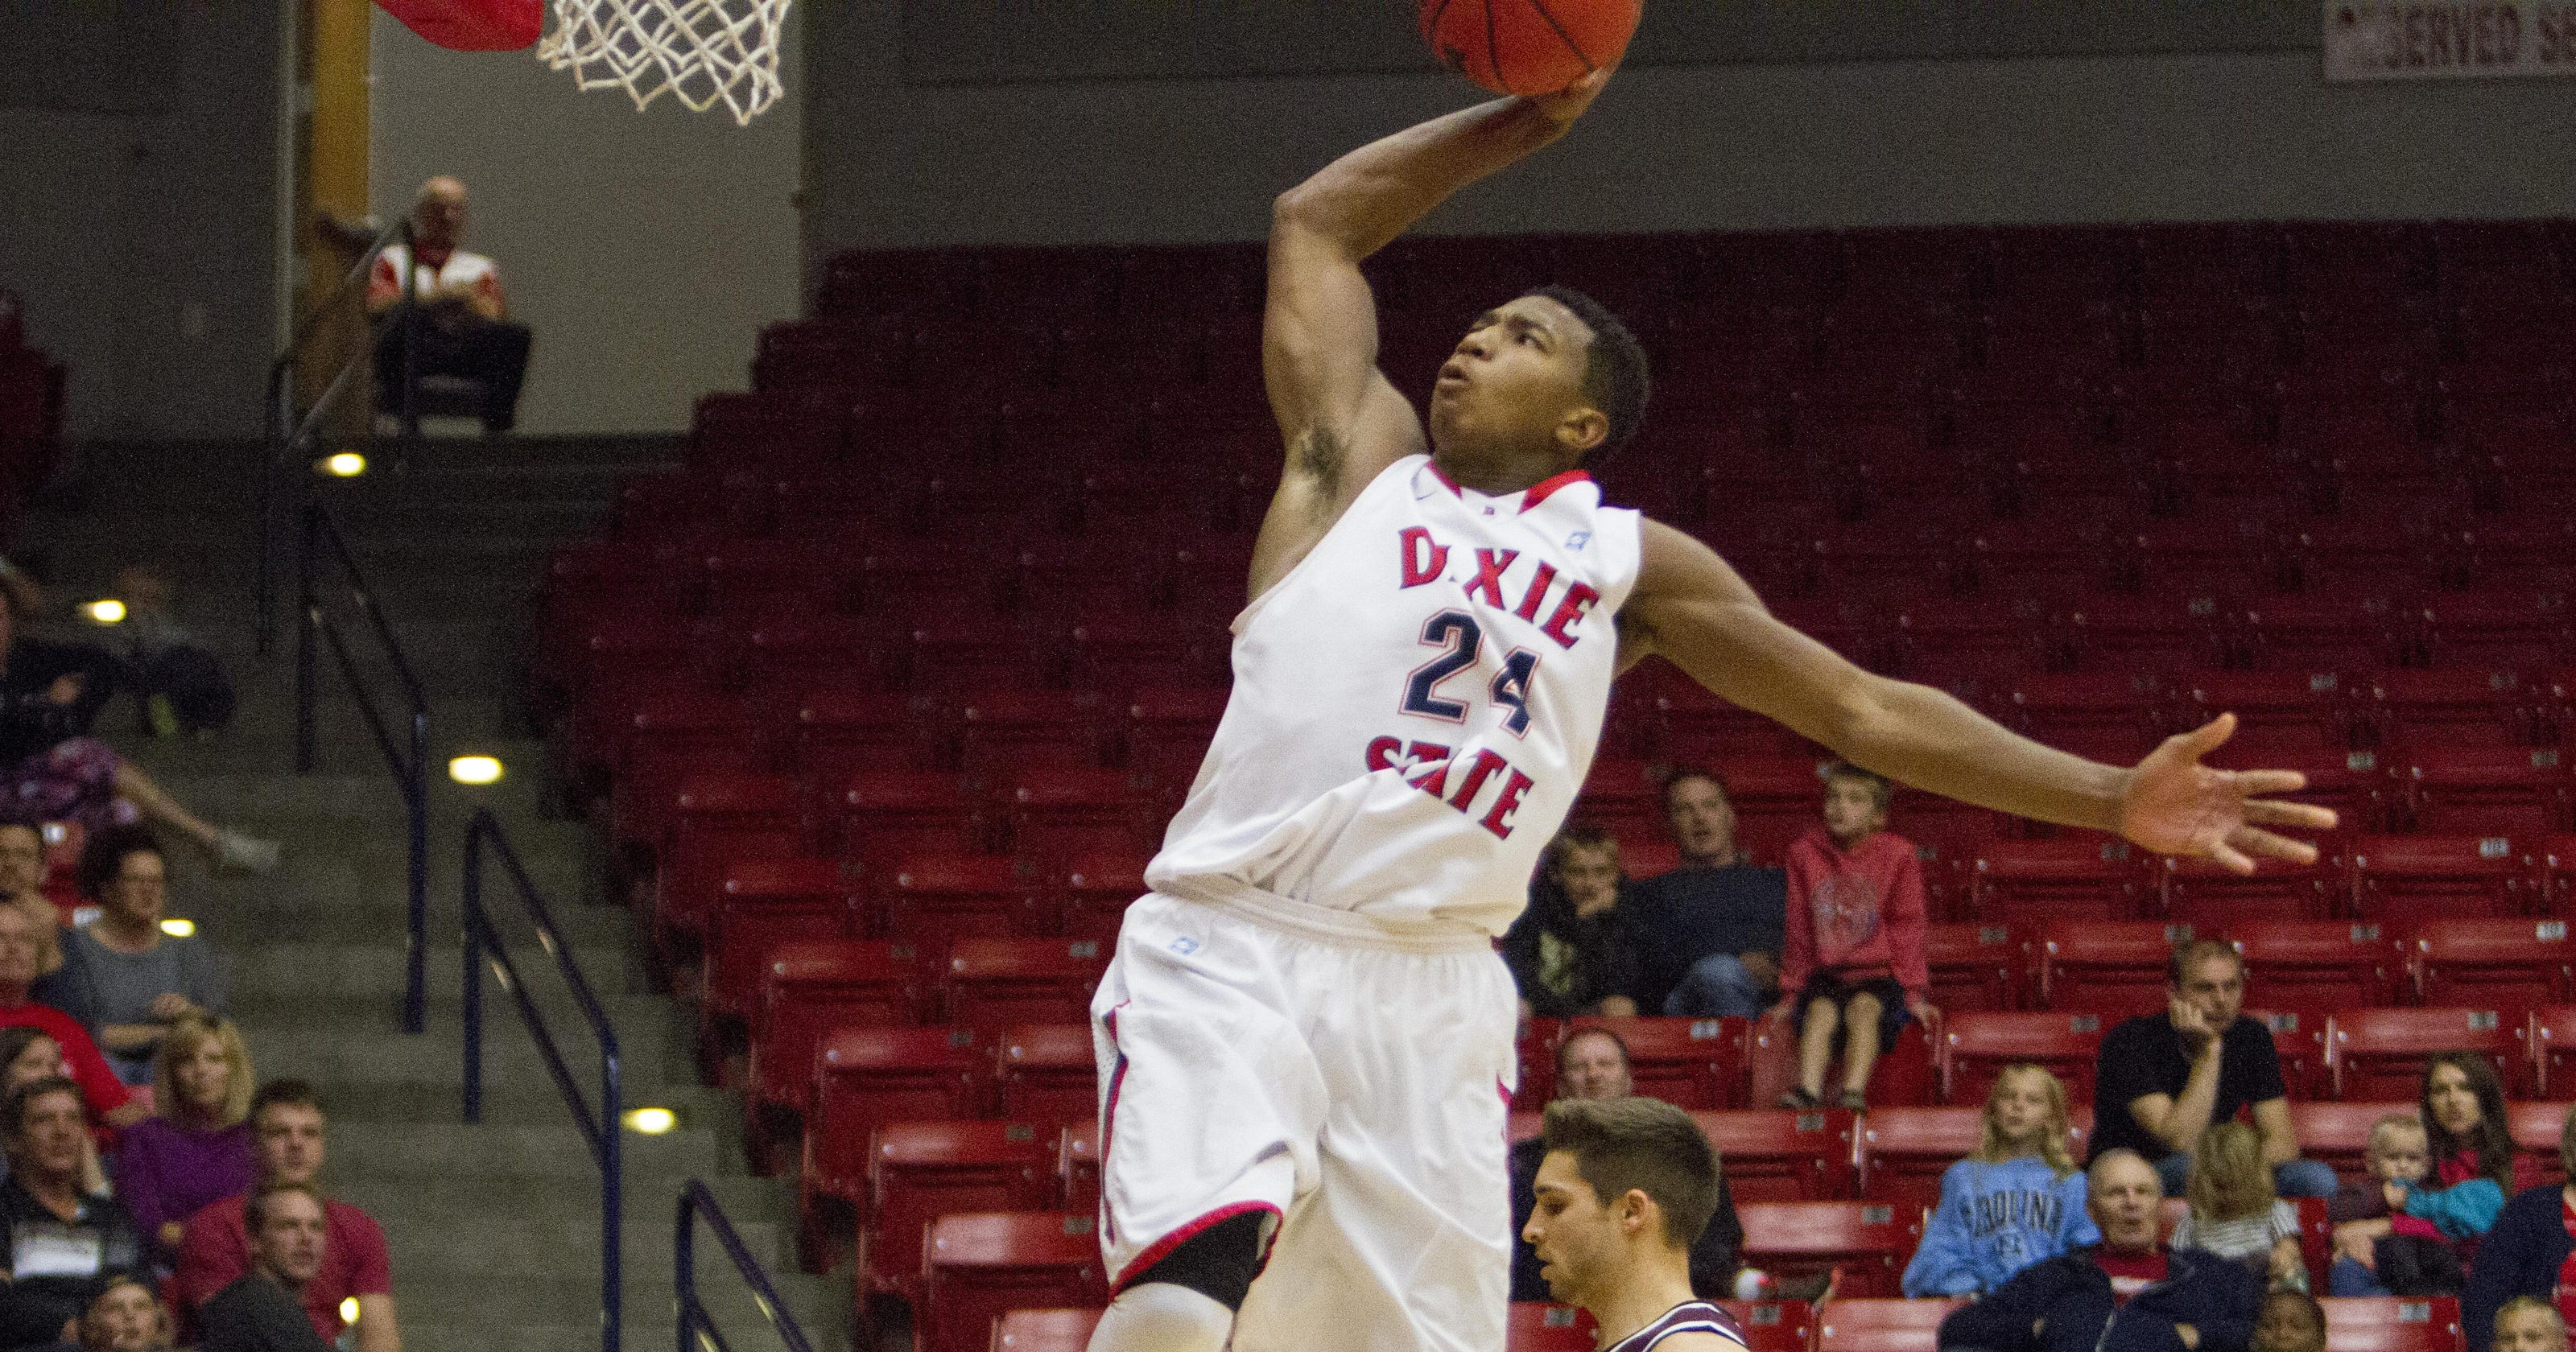 a8f618be006 Dixie State s Trevor Hill 360 slam lands on SportsCenter s Top 10 play